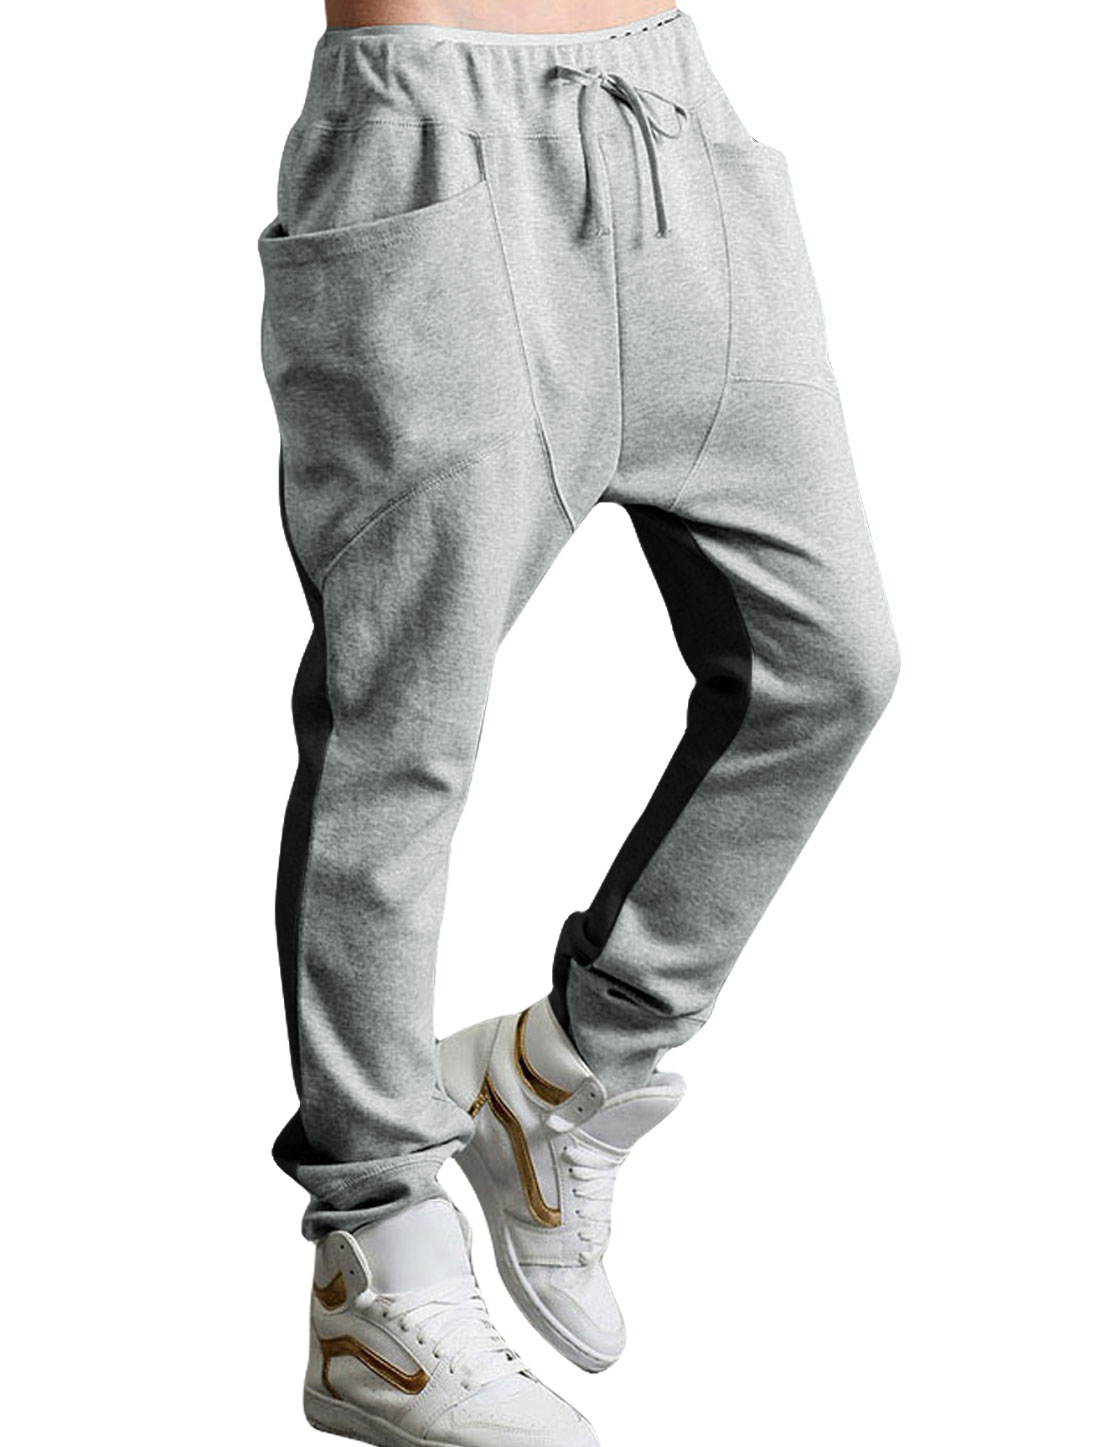 Men Funnel-Pocket Color Block Jogger Pants Gray Black W32/34